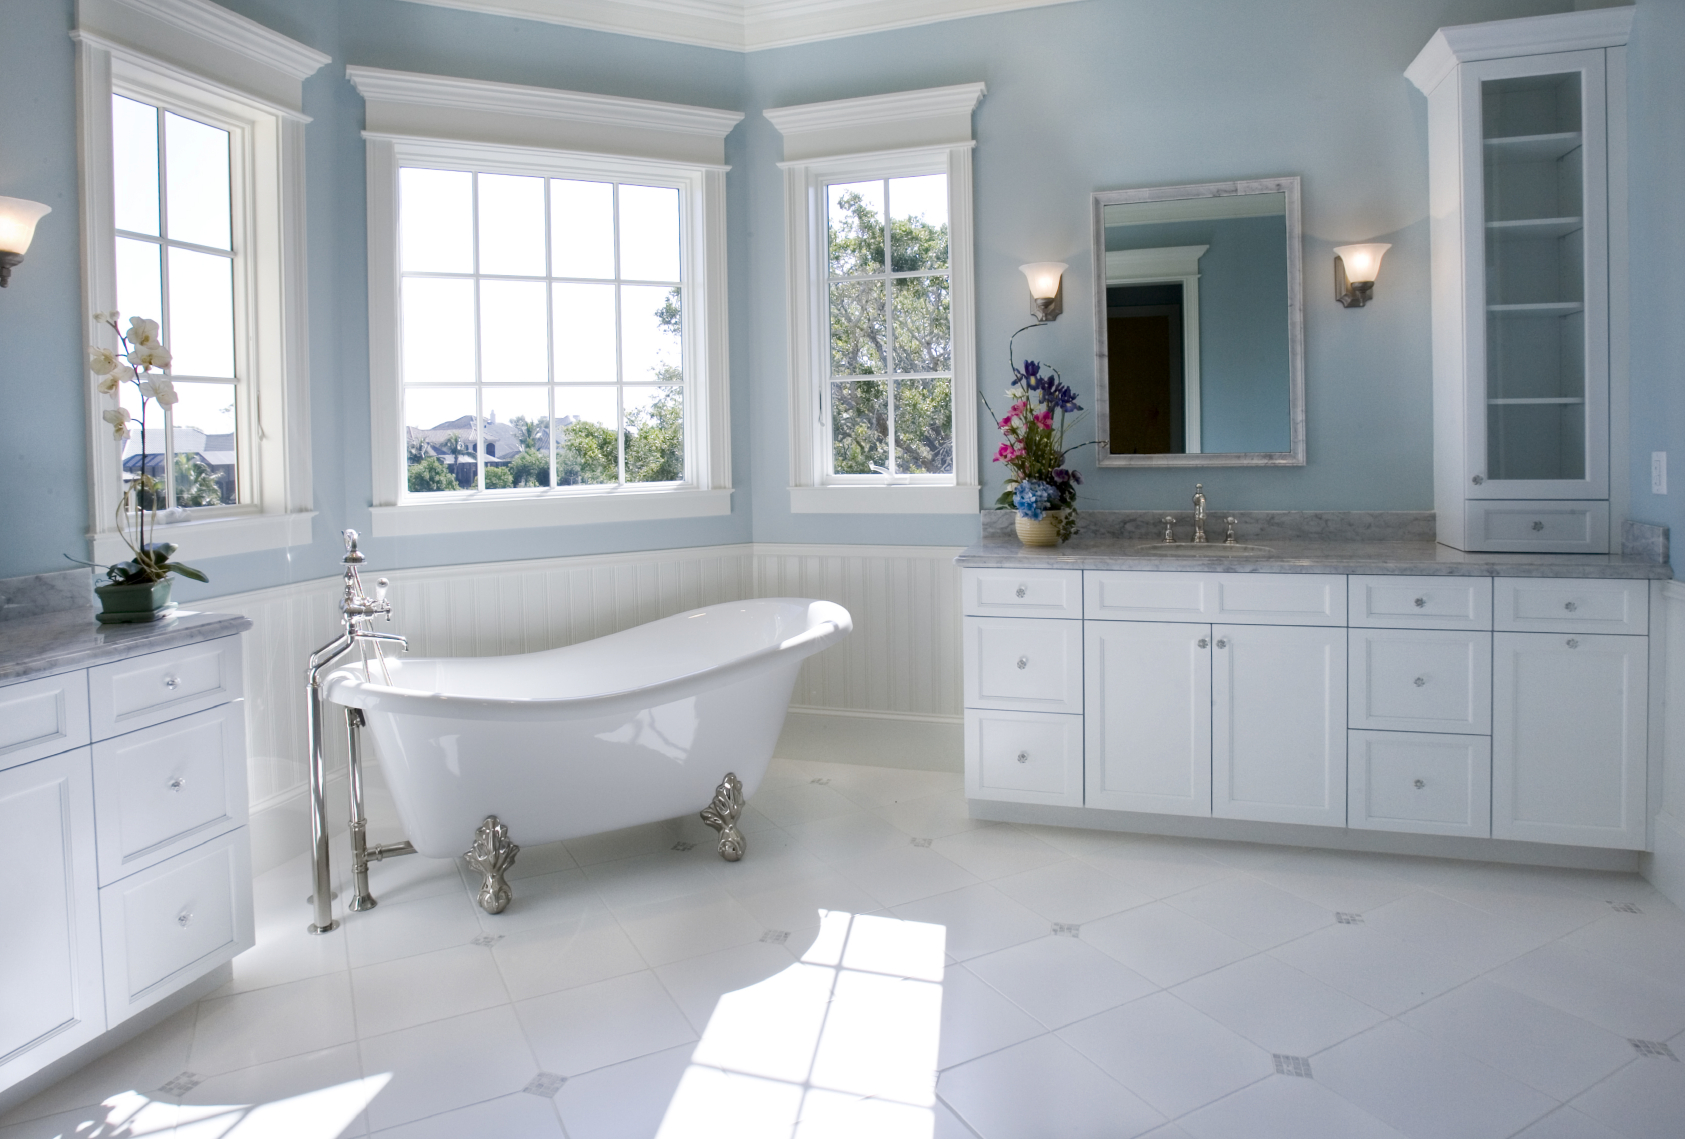 34 luxury white master bathroom ideas pictures - Master bathroom ...